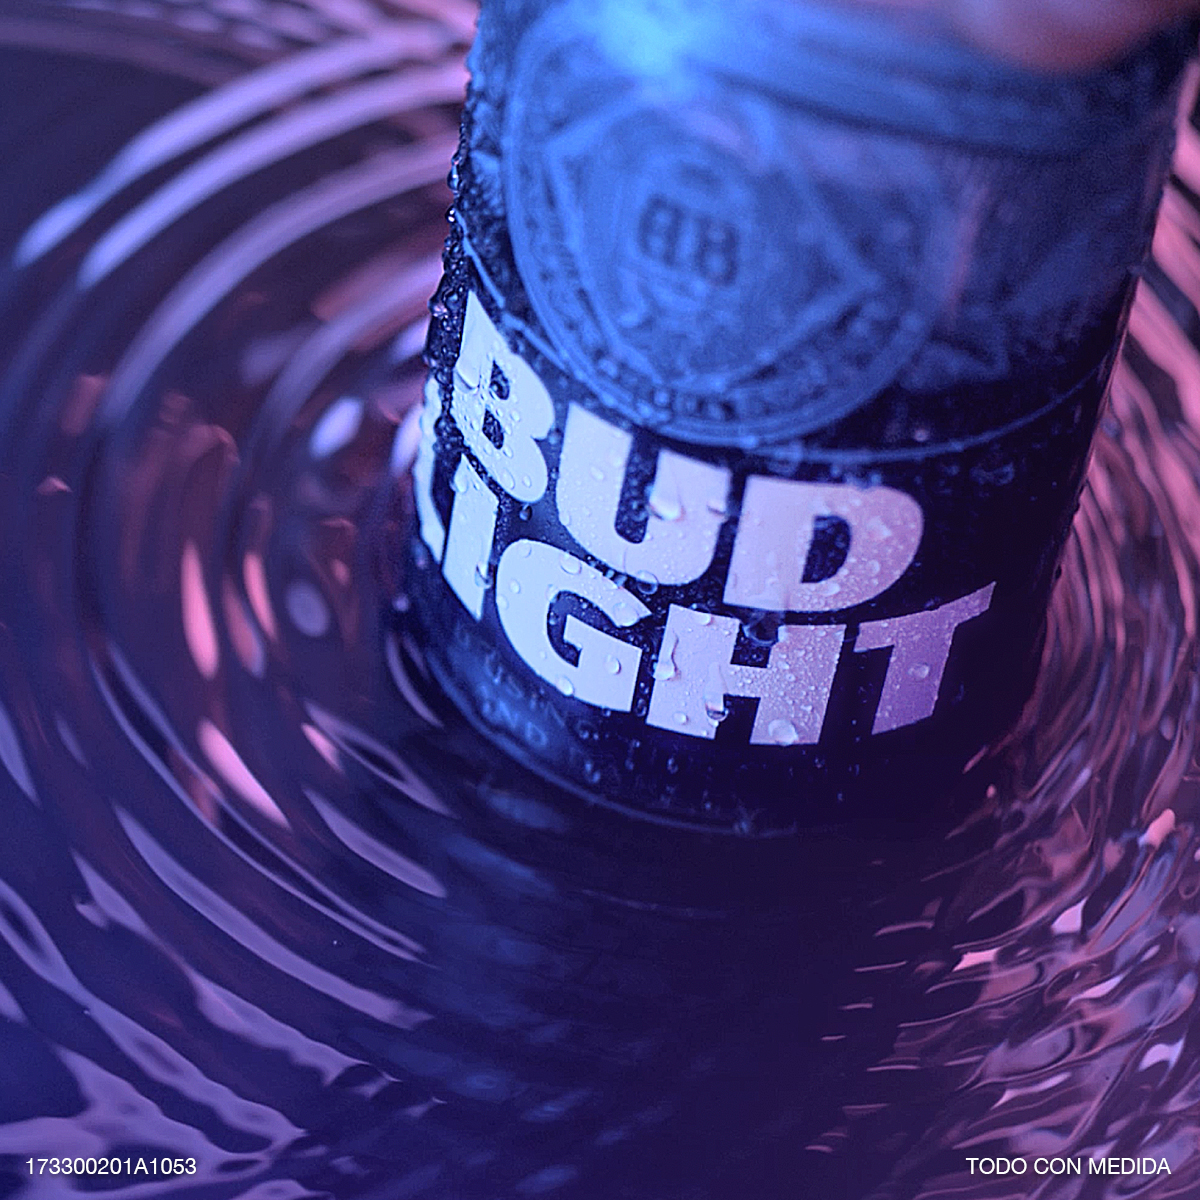 Bud Light Intrínsecos